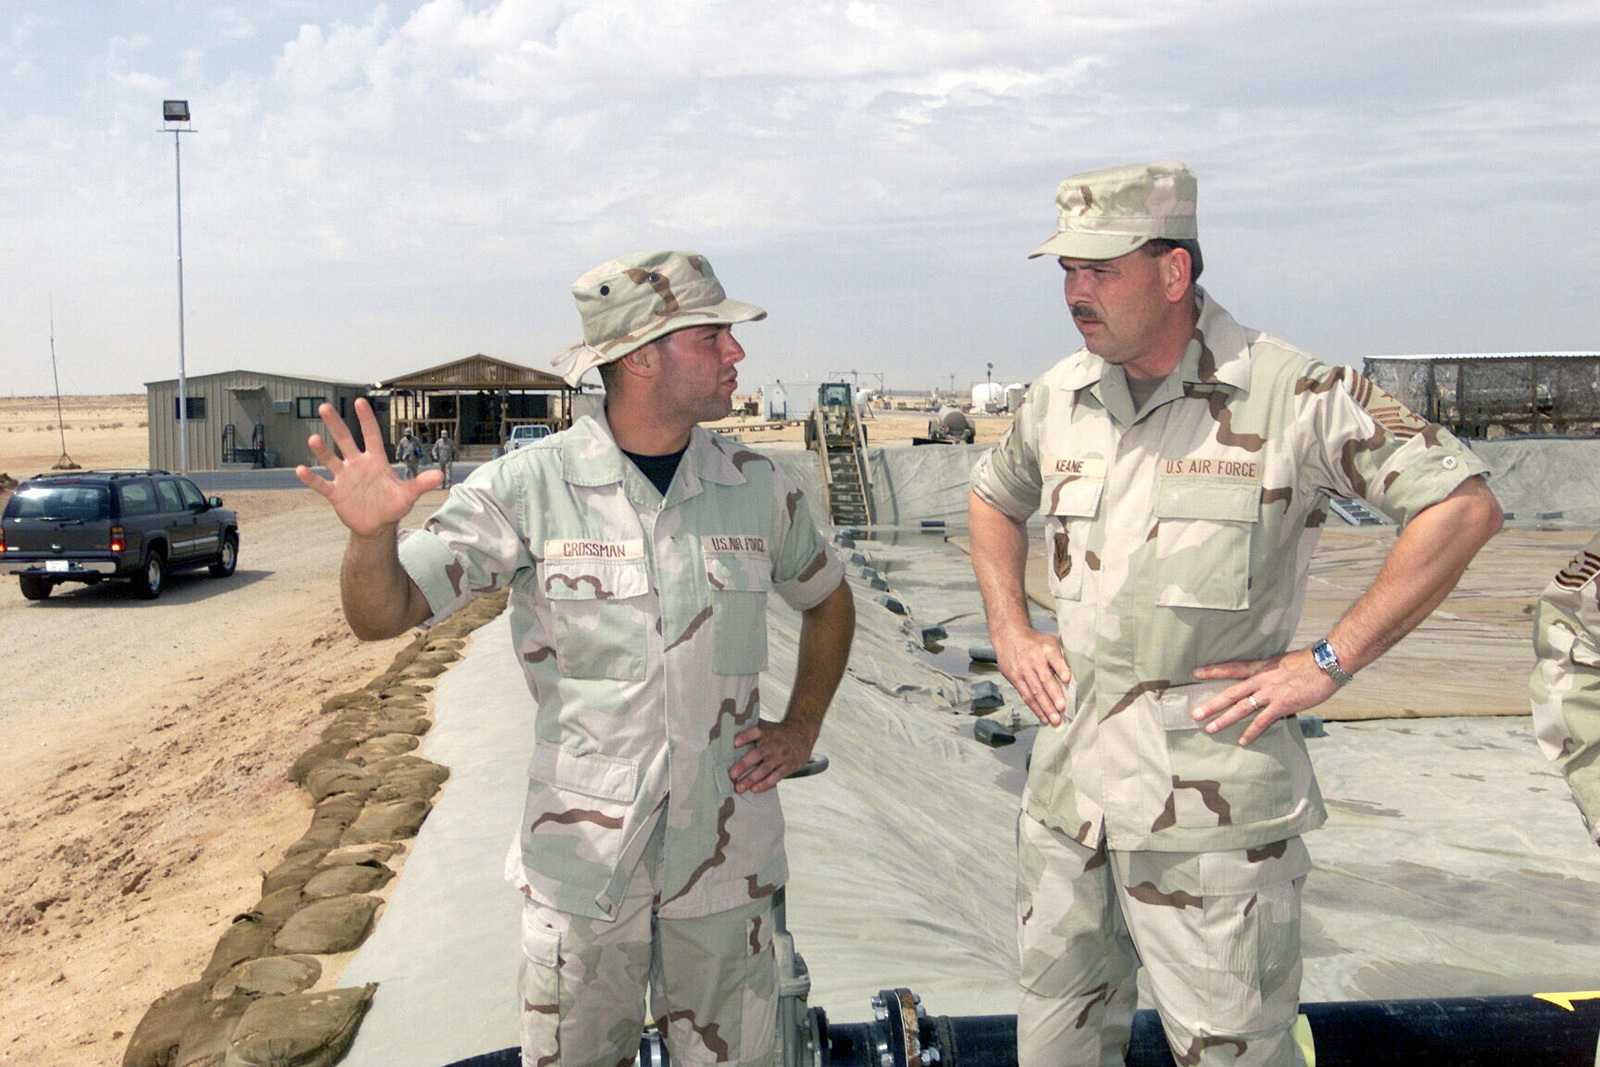 CHIEF MASTER Sergeant (CMSGT) Daniel M. Keane, (right), USAF, Air Combat Command (ACC) Command CHIEF MASTER Sergeant, talks with AIRMAN First Class (A1C) Ryan Crossman, USAF, the 319th Supply Squadron (SUPS), Grand Forks AFB, North Dakota, deployed to the 363rd Expeditionary Supply Squadron (ESUPS), during a visit to Prince Sultan Air Base, Kingdom of Saudi Arabia